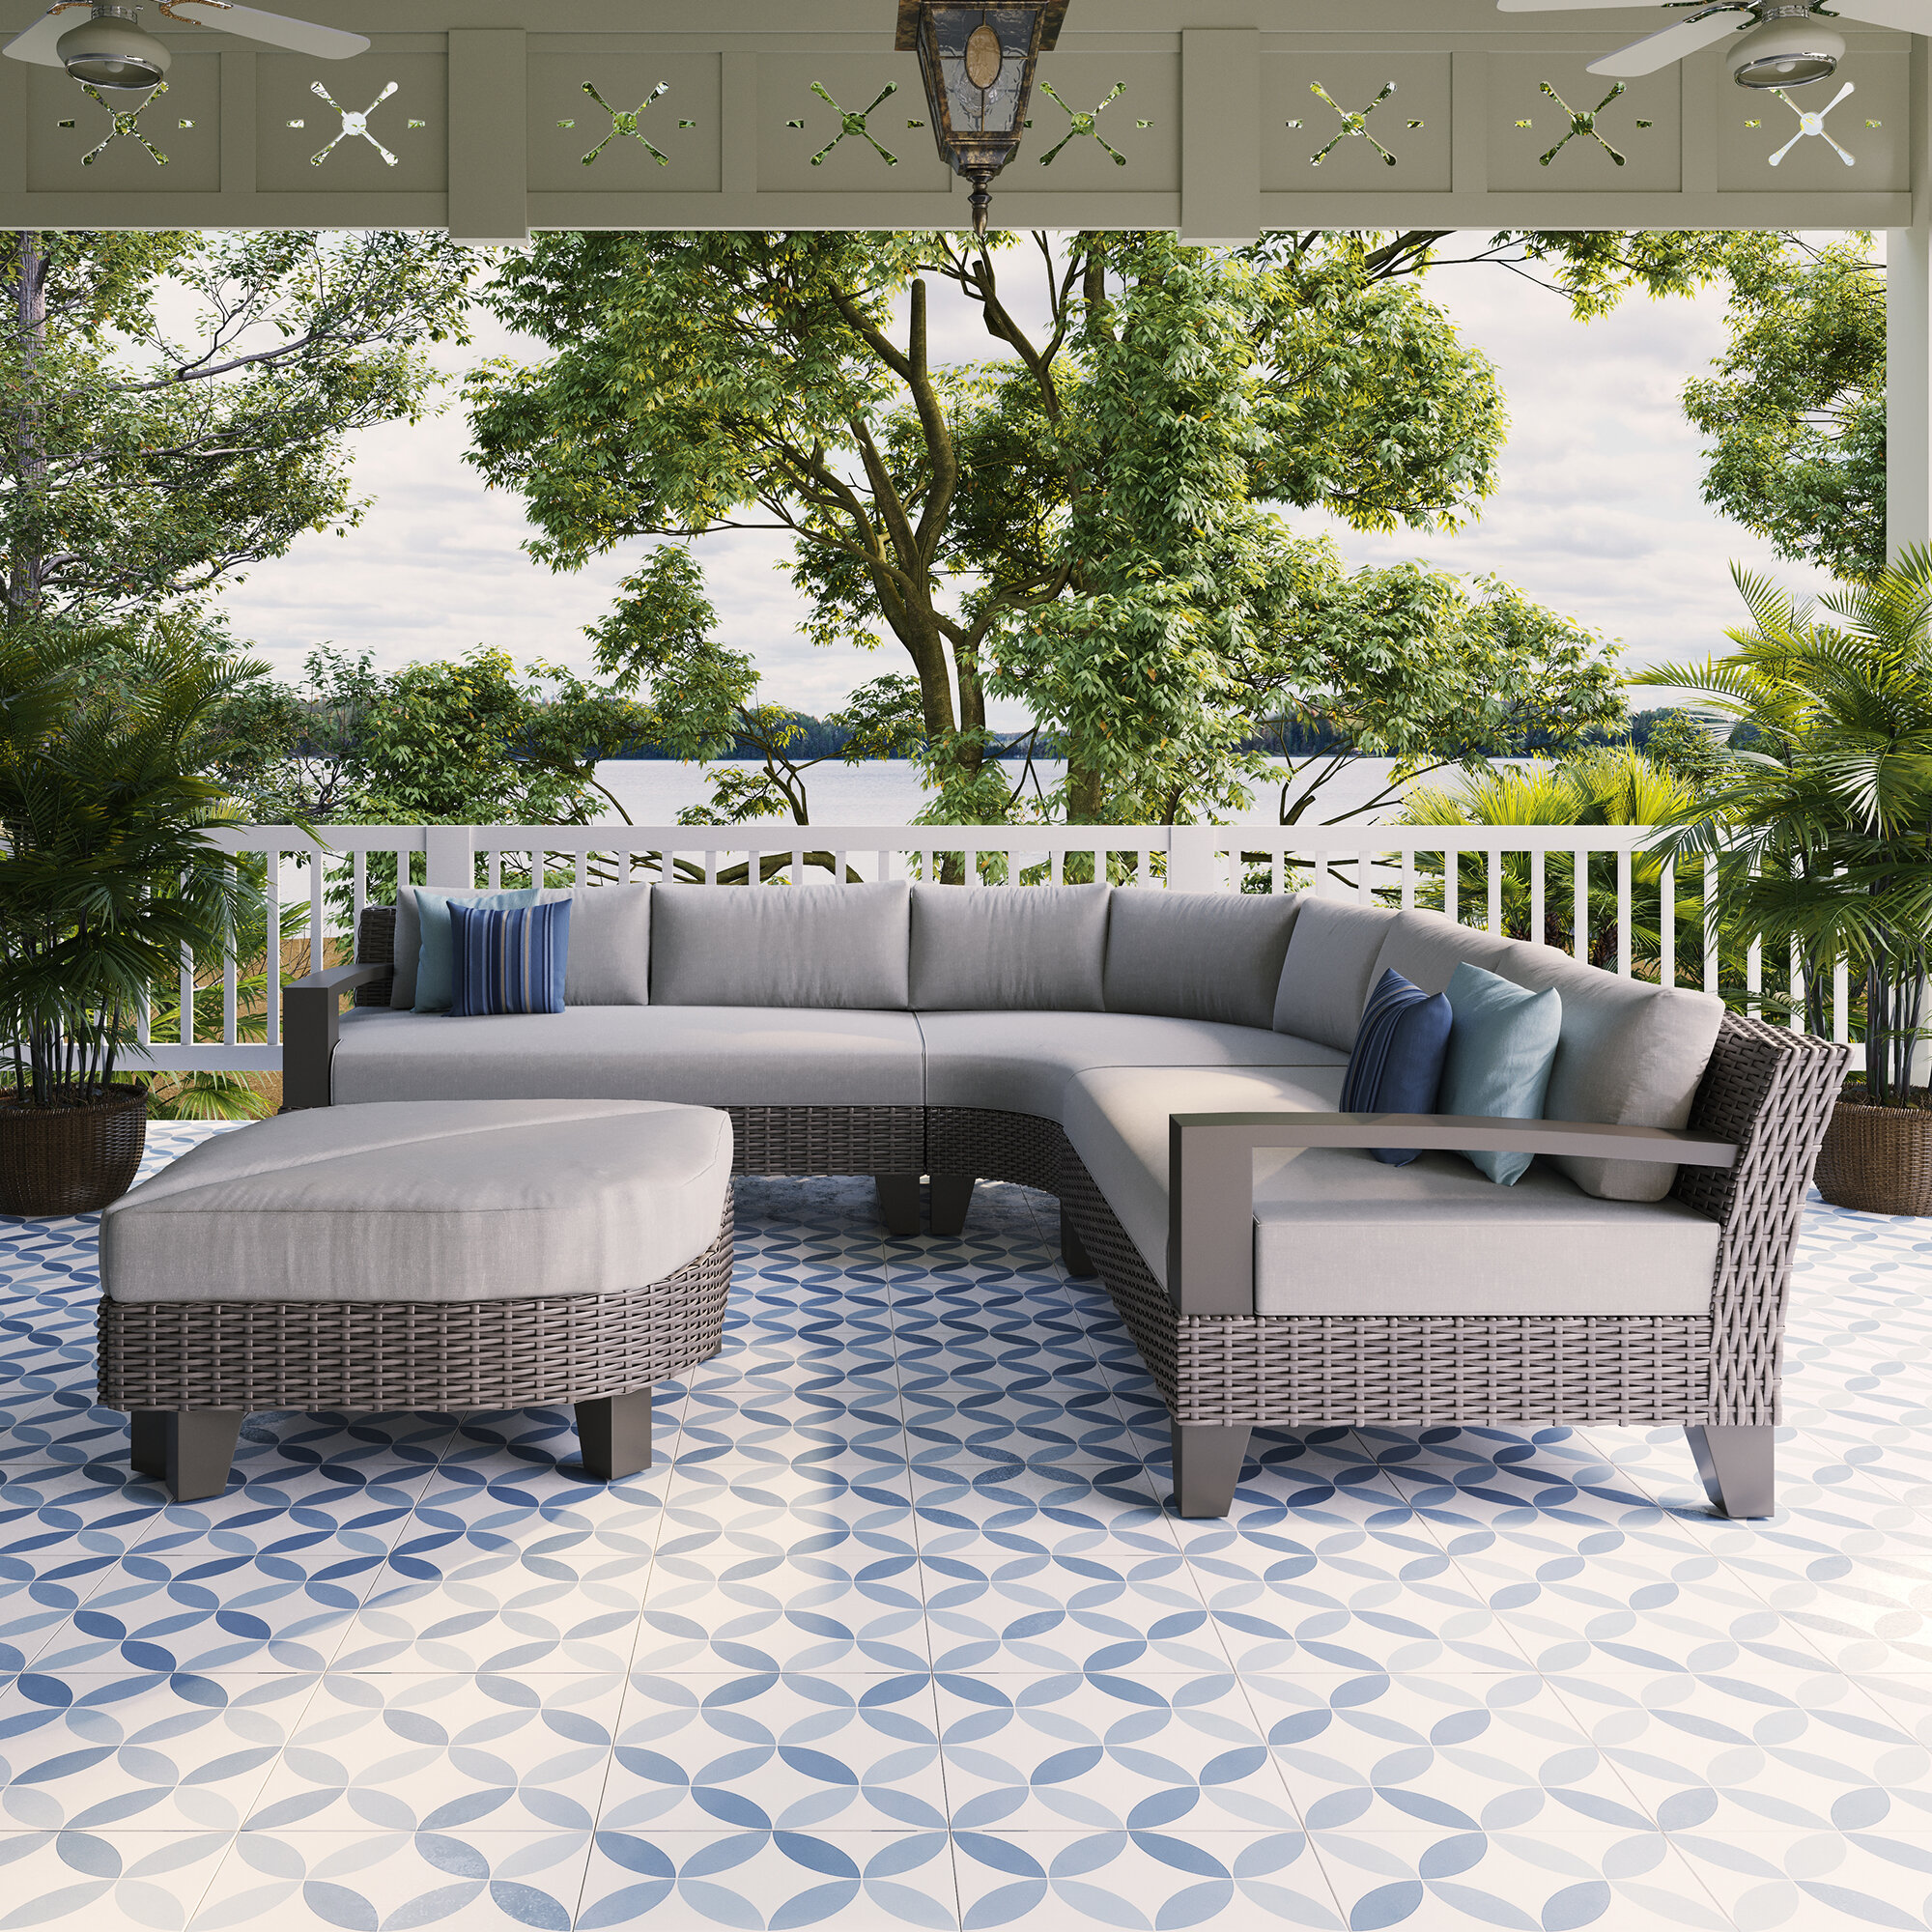 Martha Stewart Wicker/Rattan 4 - Person Seating Group with